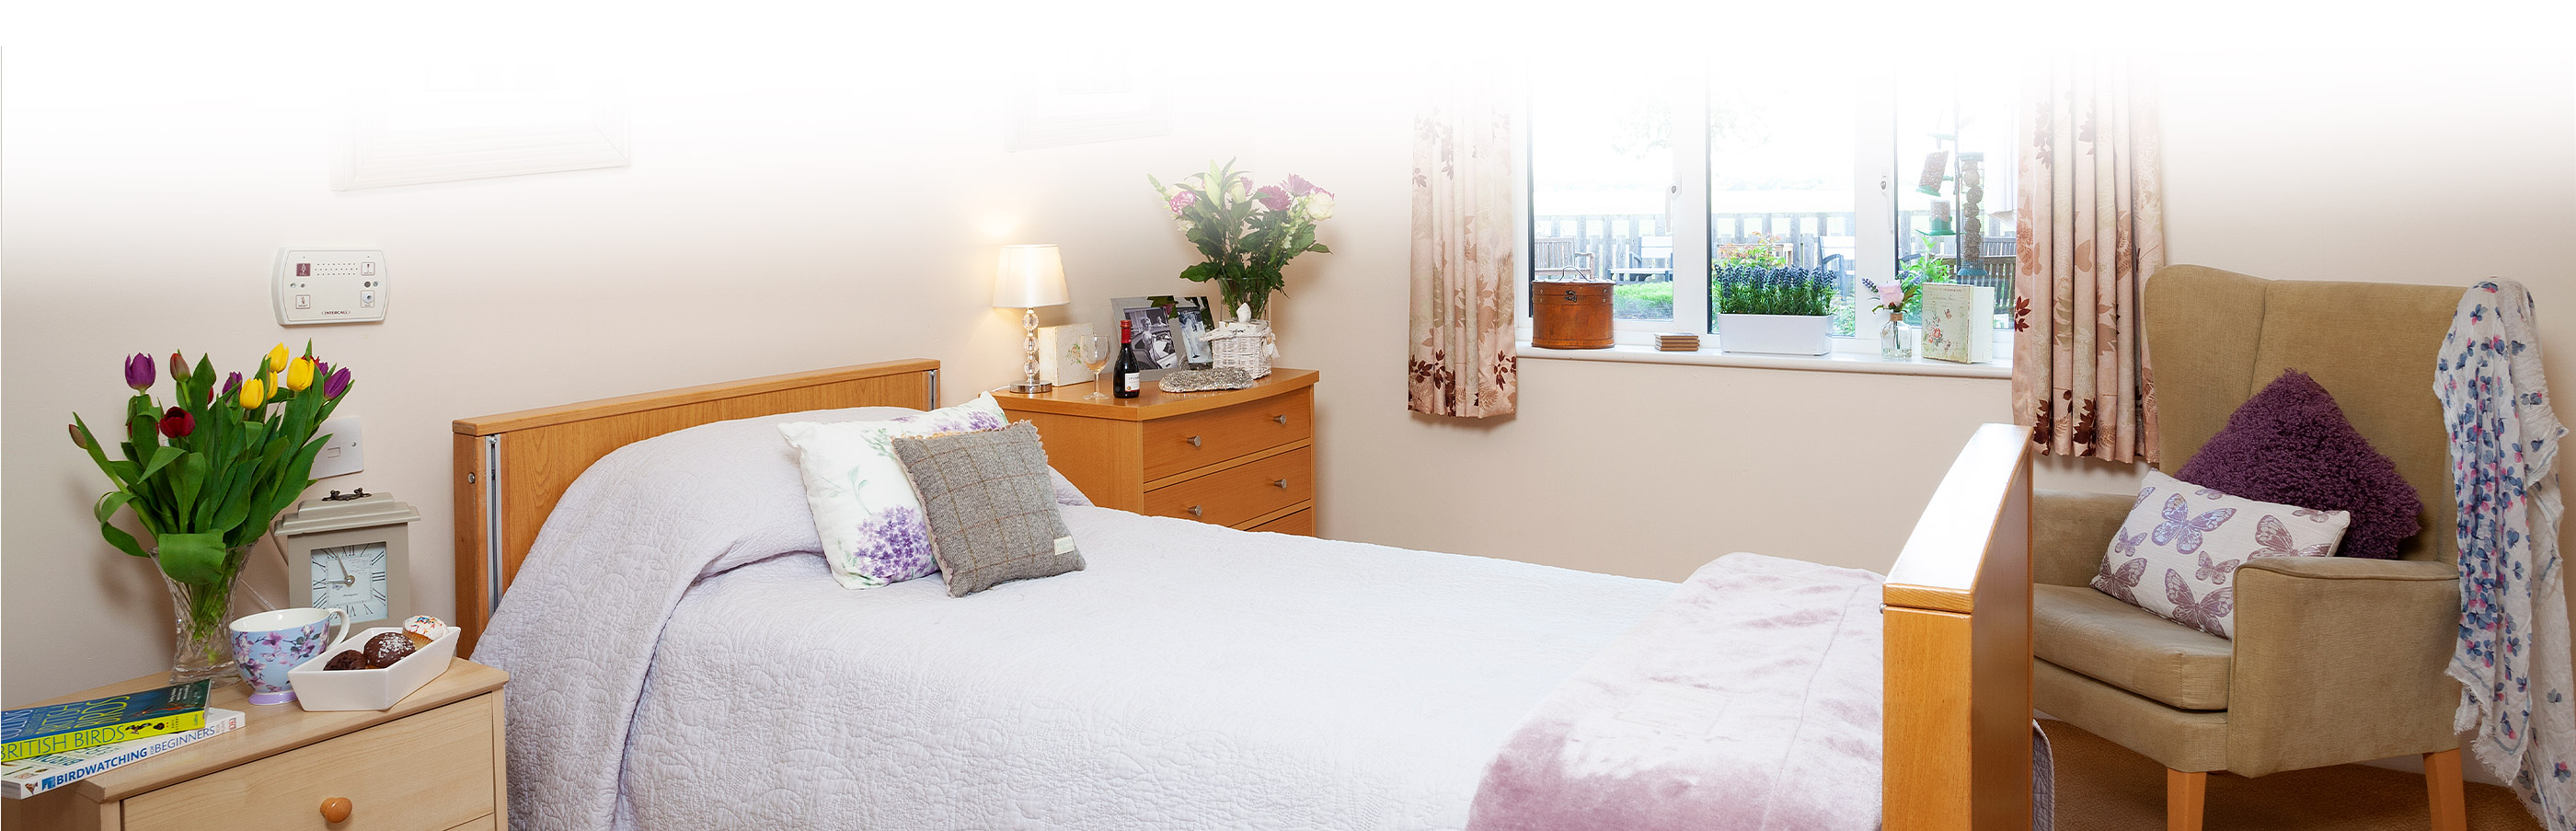 Bedroom at Stowford House Care Home Abingdon